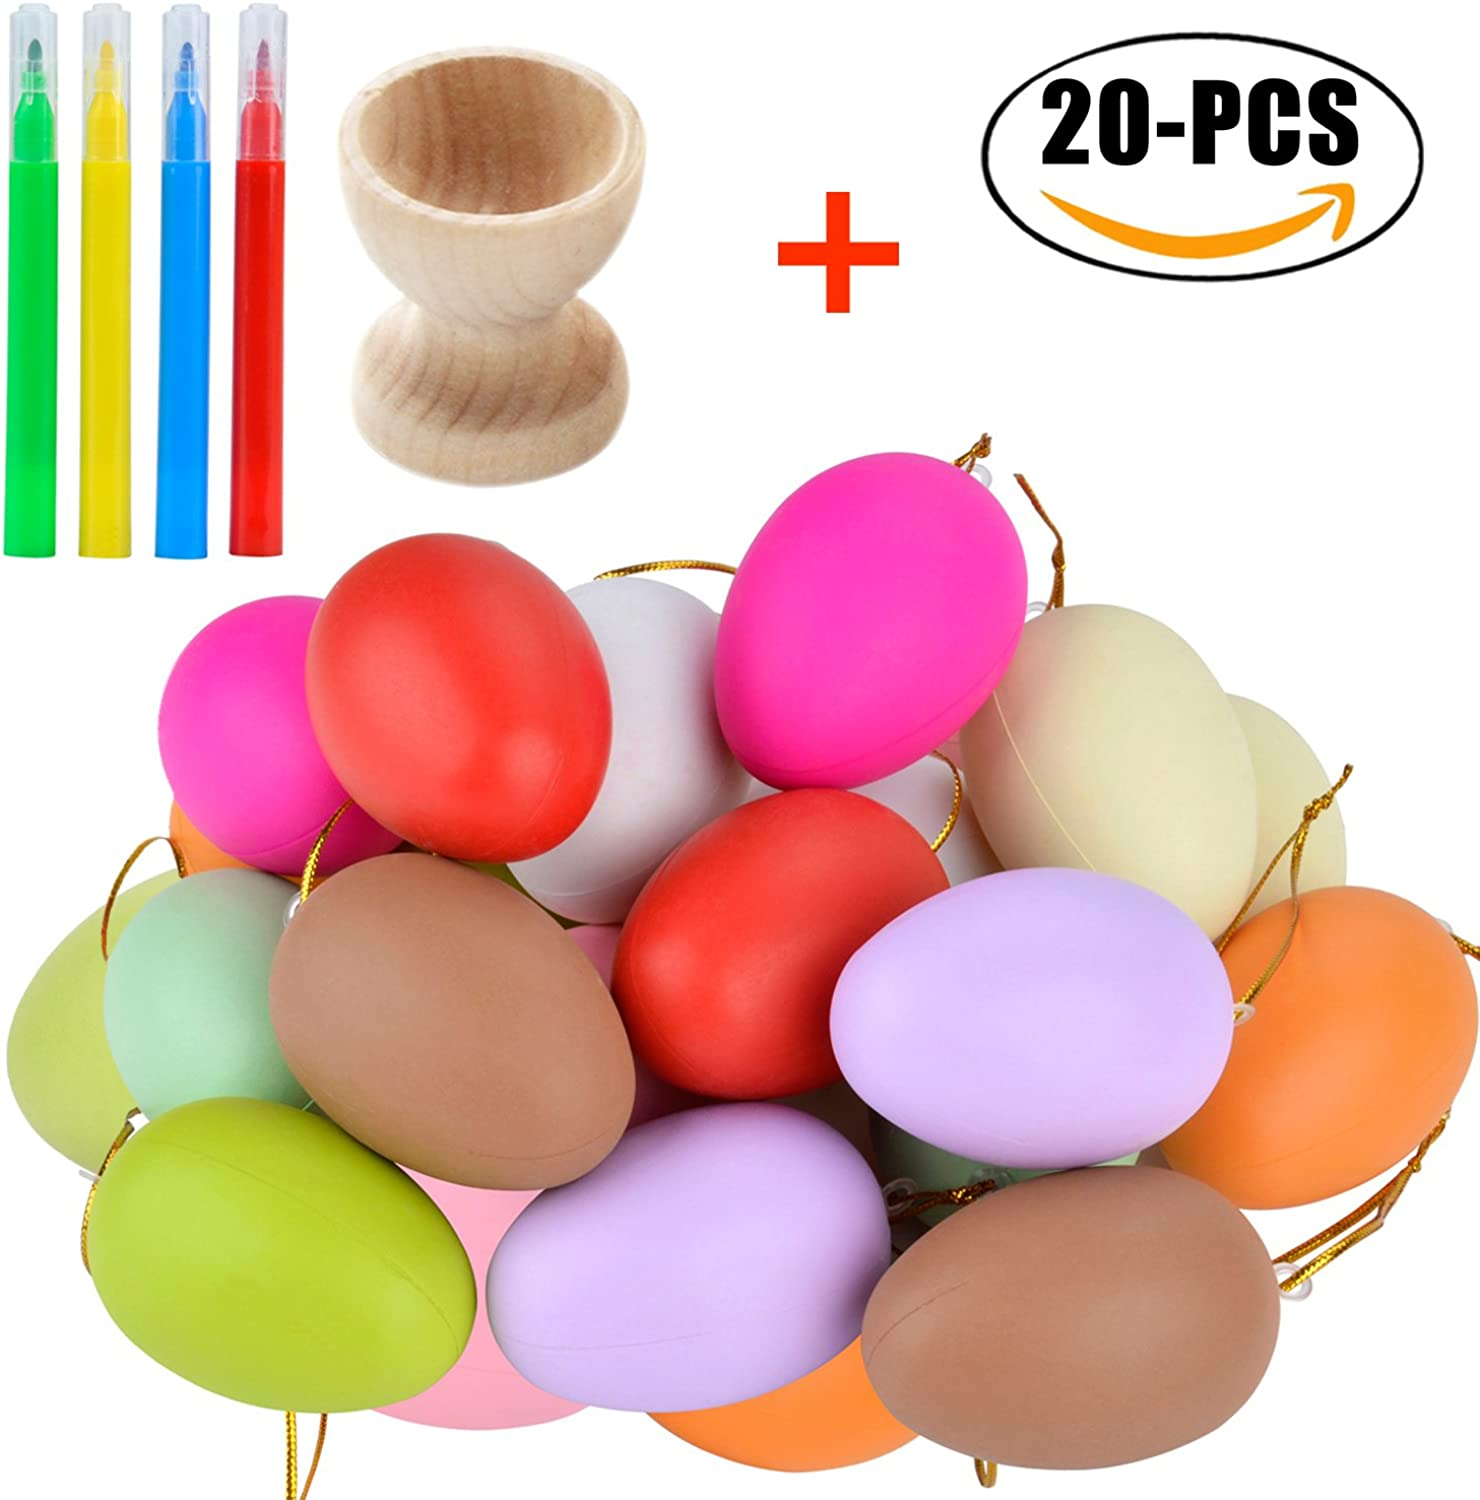 Funpa 20PCS DIY Egg Toy Simulation Artificial Egg Kids Paint Toy with Egg Cup and 4PCS Paint Pens